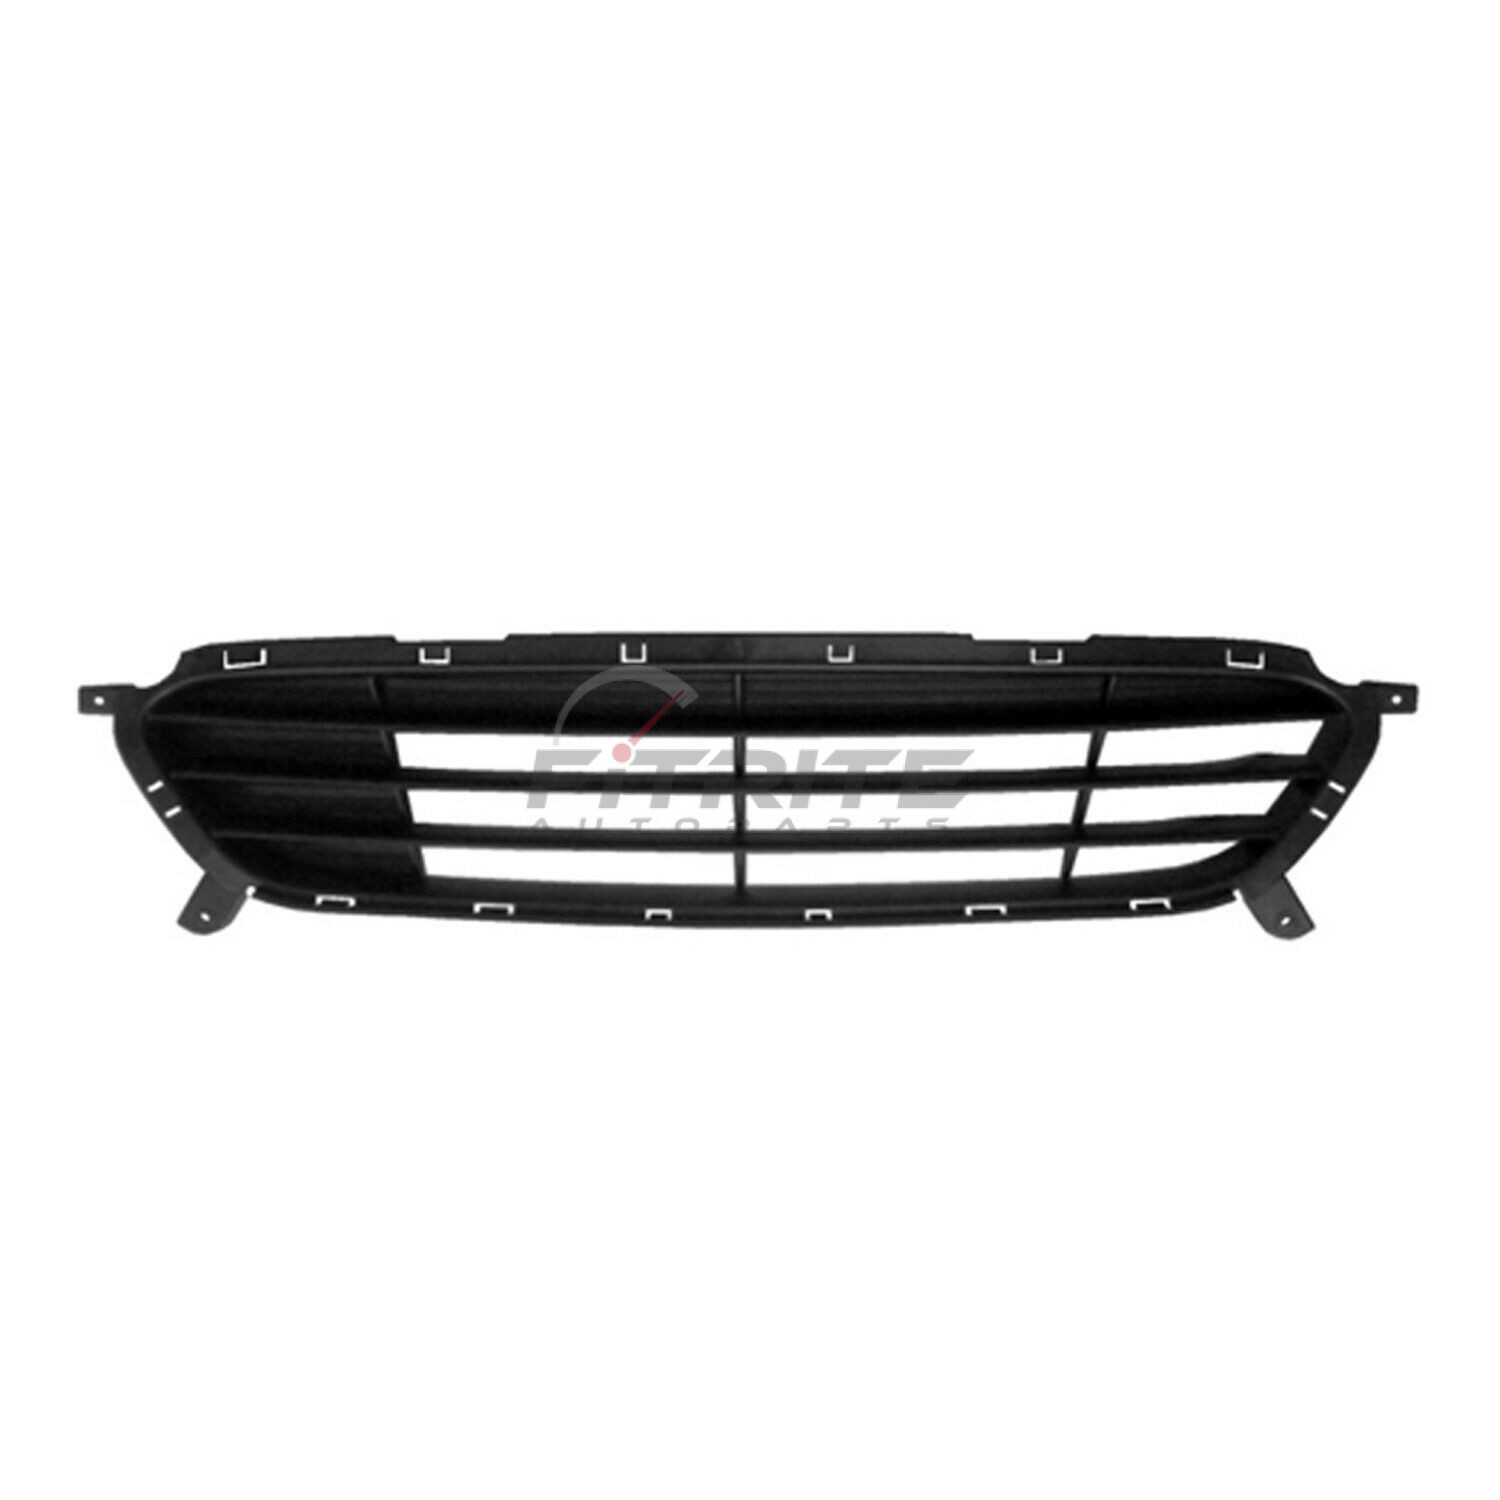 NEW FRONT BUMPER COVER GRILLE FOR 2014-2017 HYUNDAI ACCENT HY1036128C CAPA